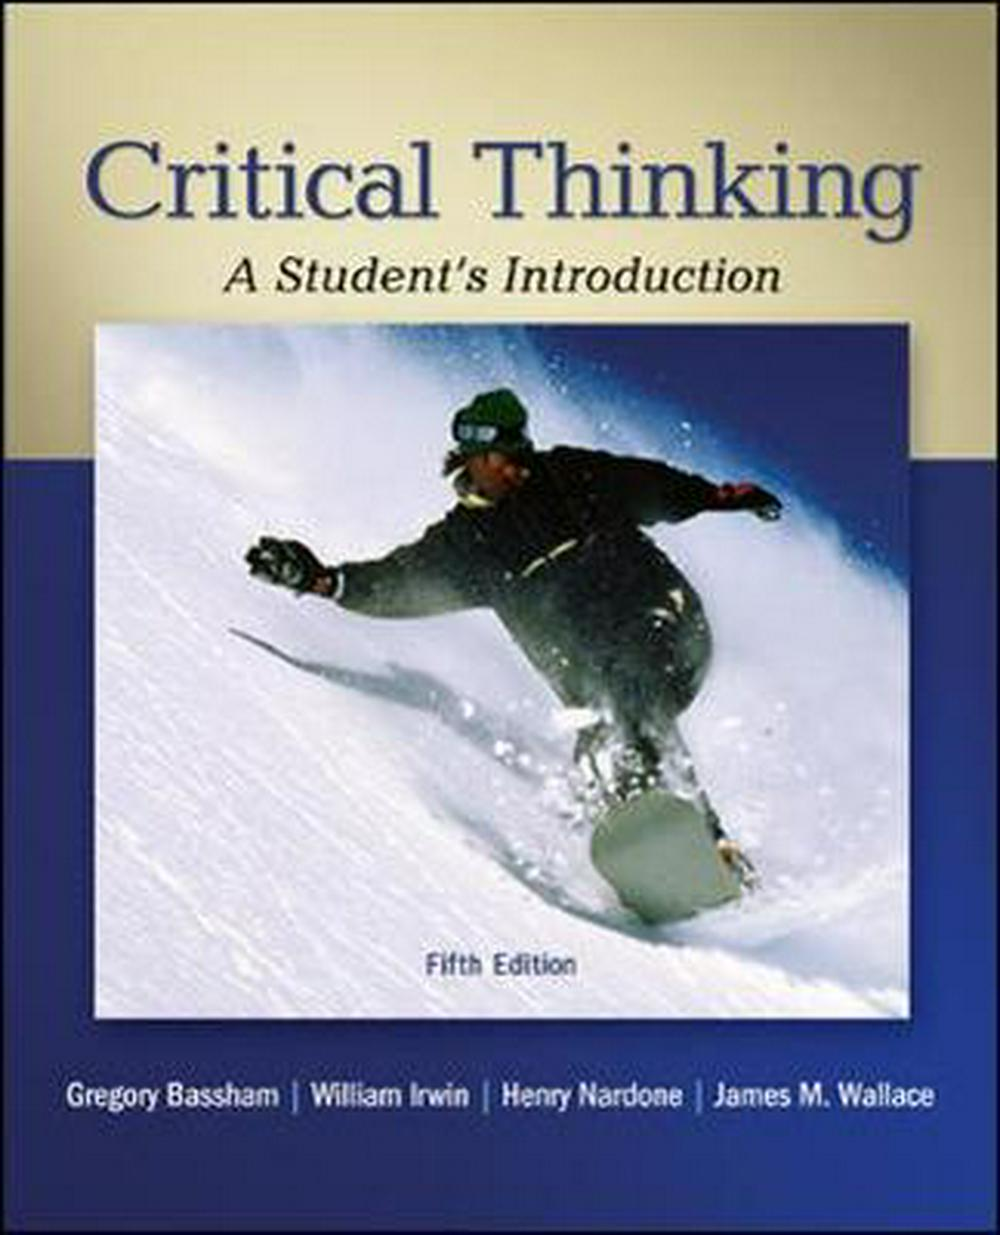 Critical Thinking: A Student's Introduction by Gregory Bassham, ISBN: 9780078038310